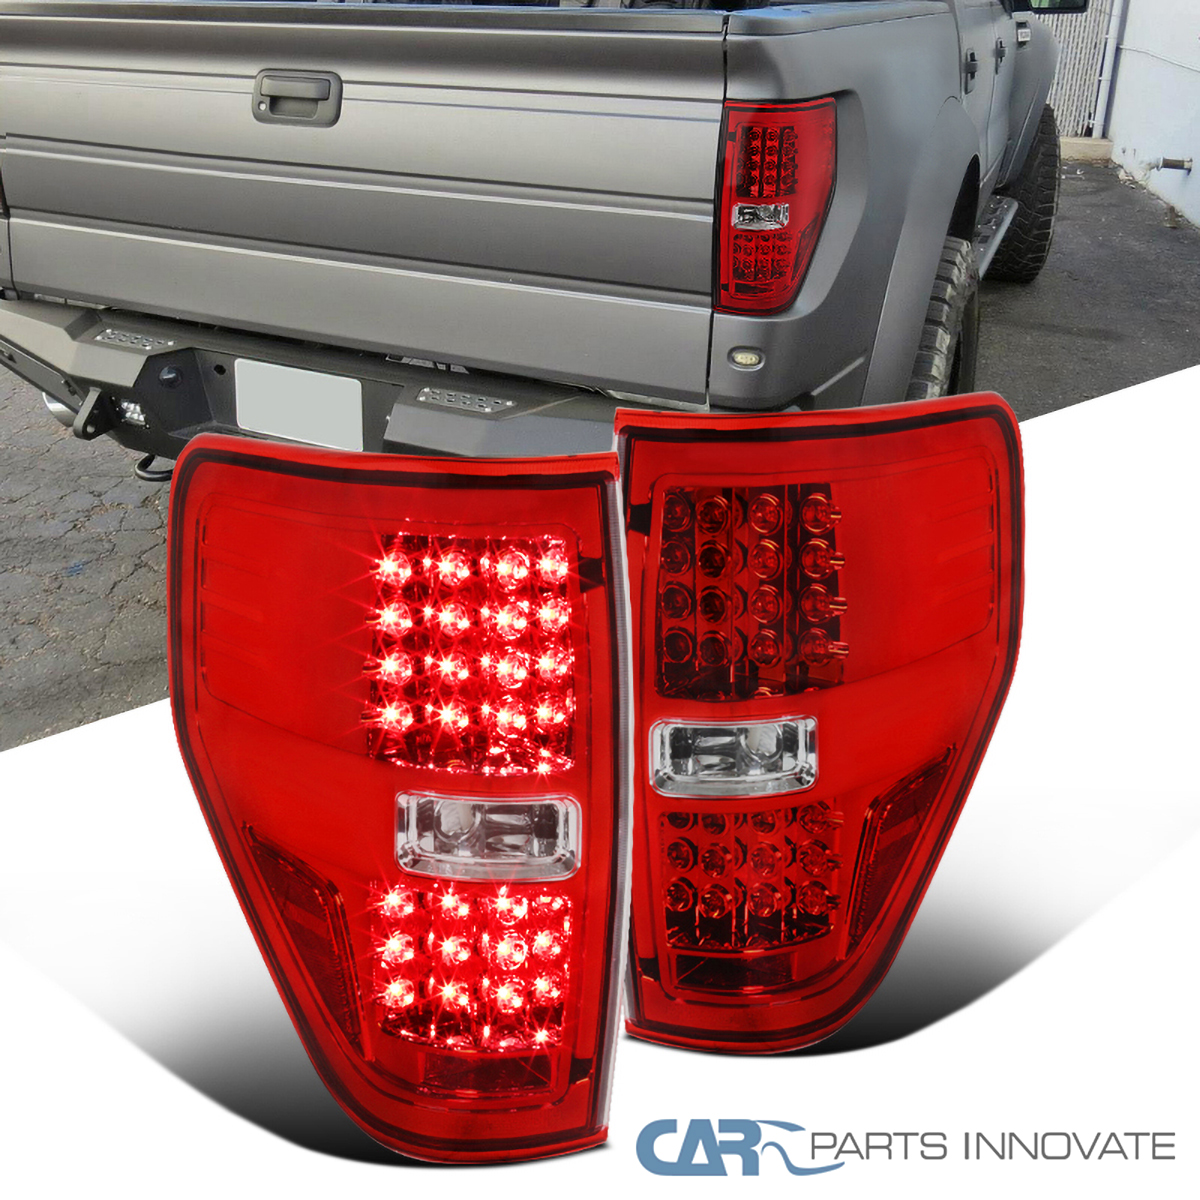 Details About Ford 09 14 F150 F 150 Pickup Red Led Tail Lights Rear Brake Lamps Left Right